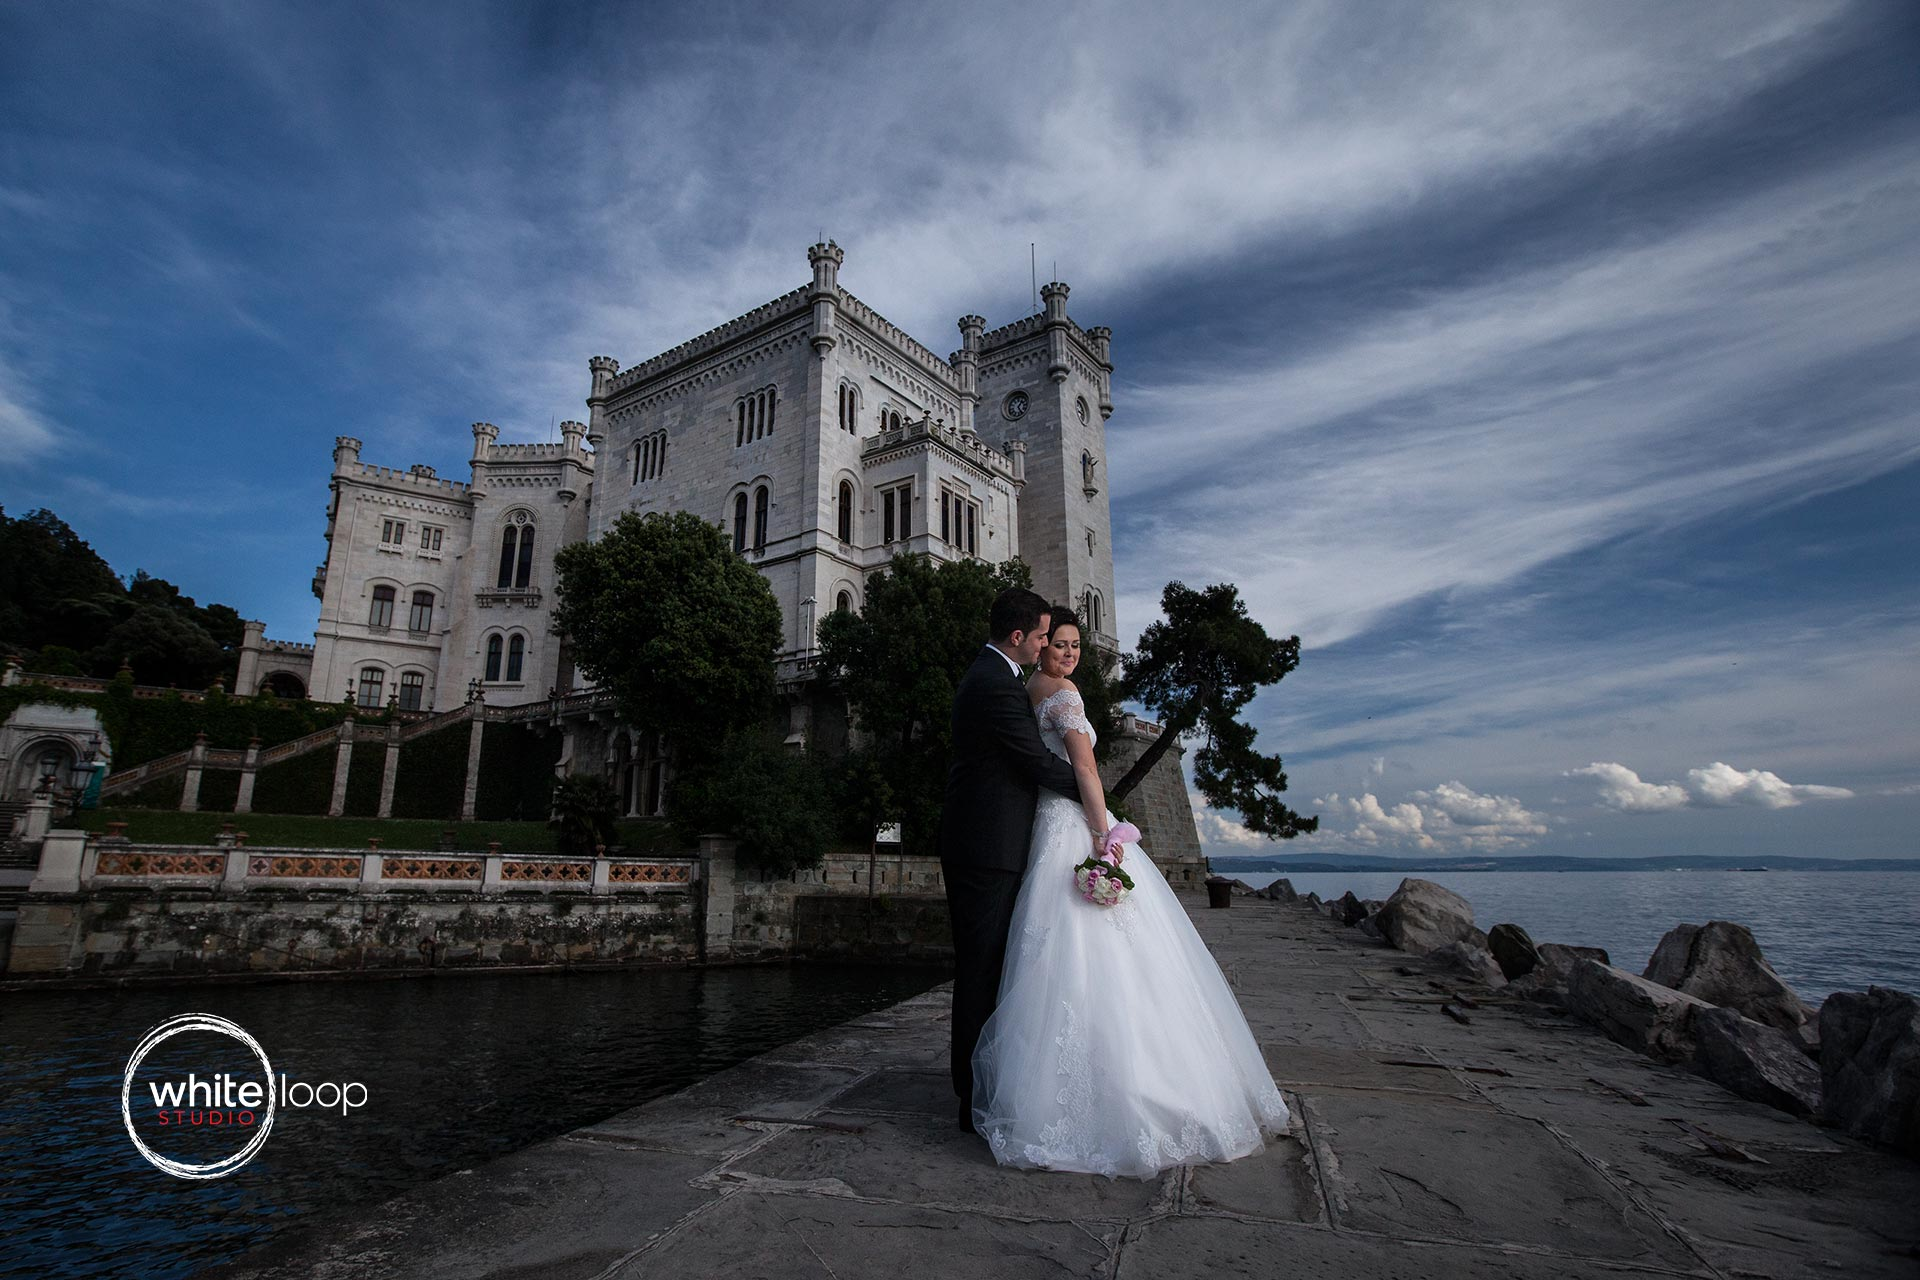 The bride and groom are holding each other on the porch of the Miramare Castle, the famous Maximilian Castle.